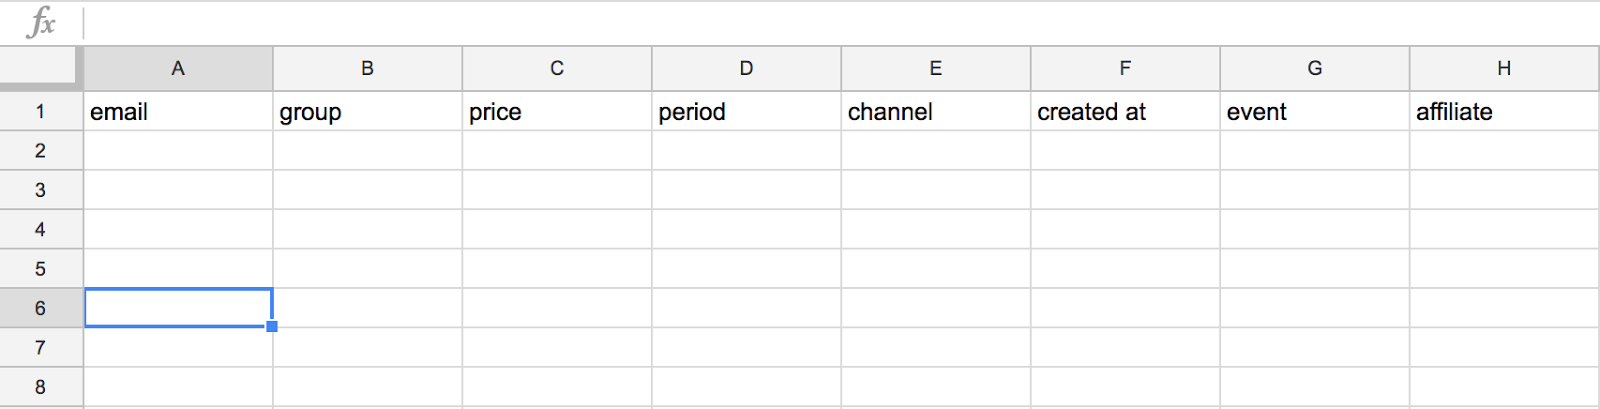 google spreadsheet examples of tracking referrals